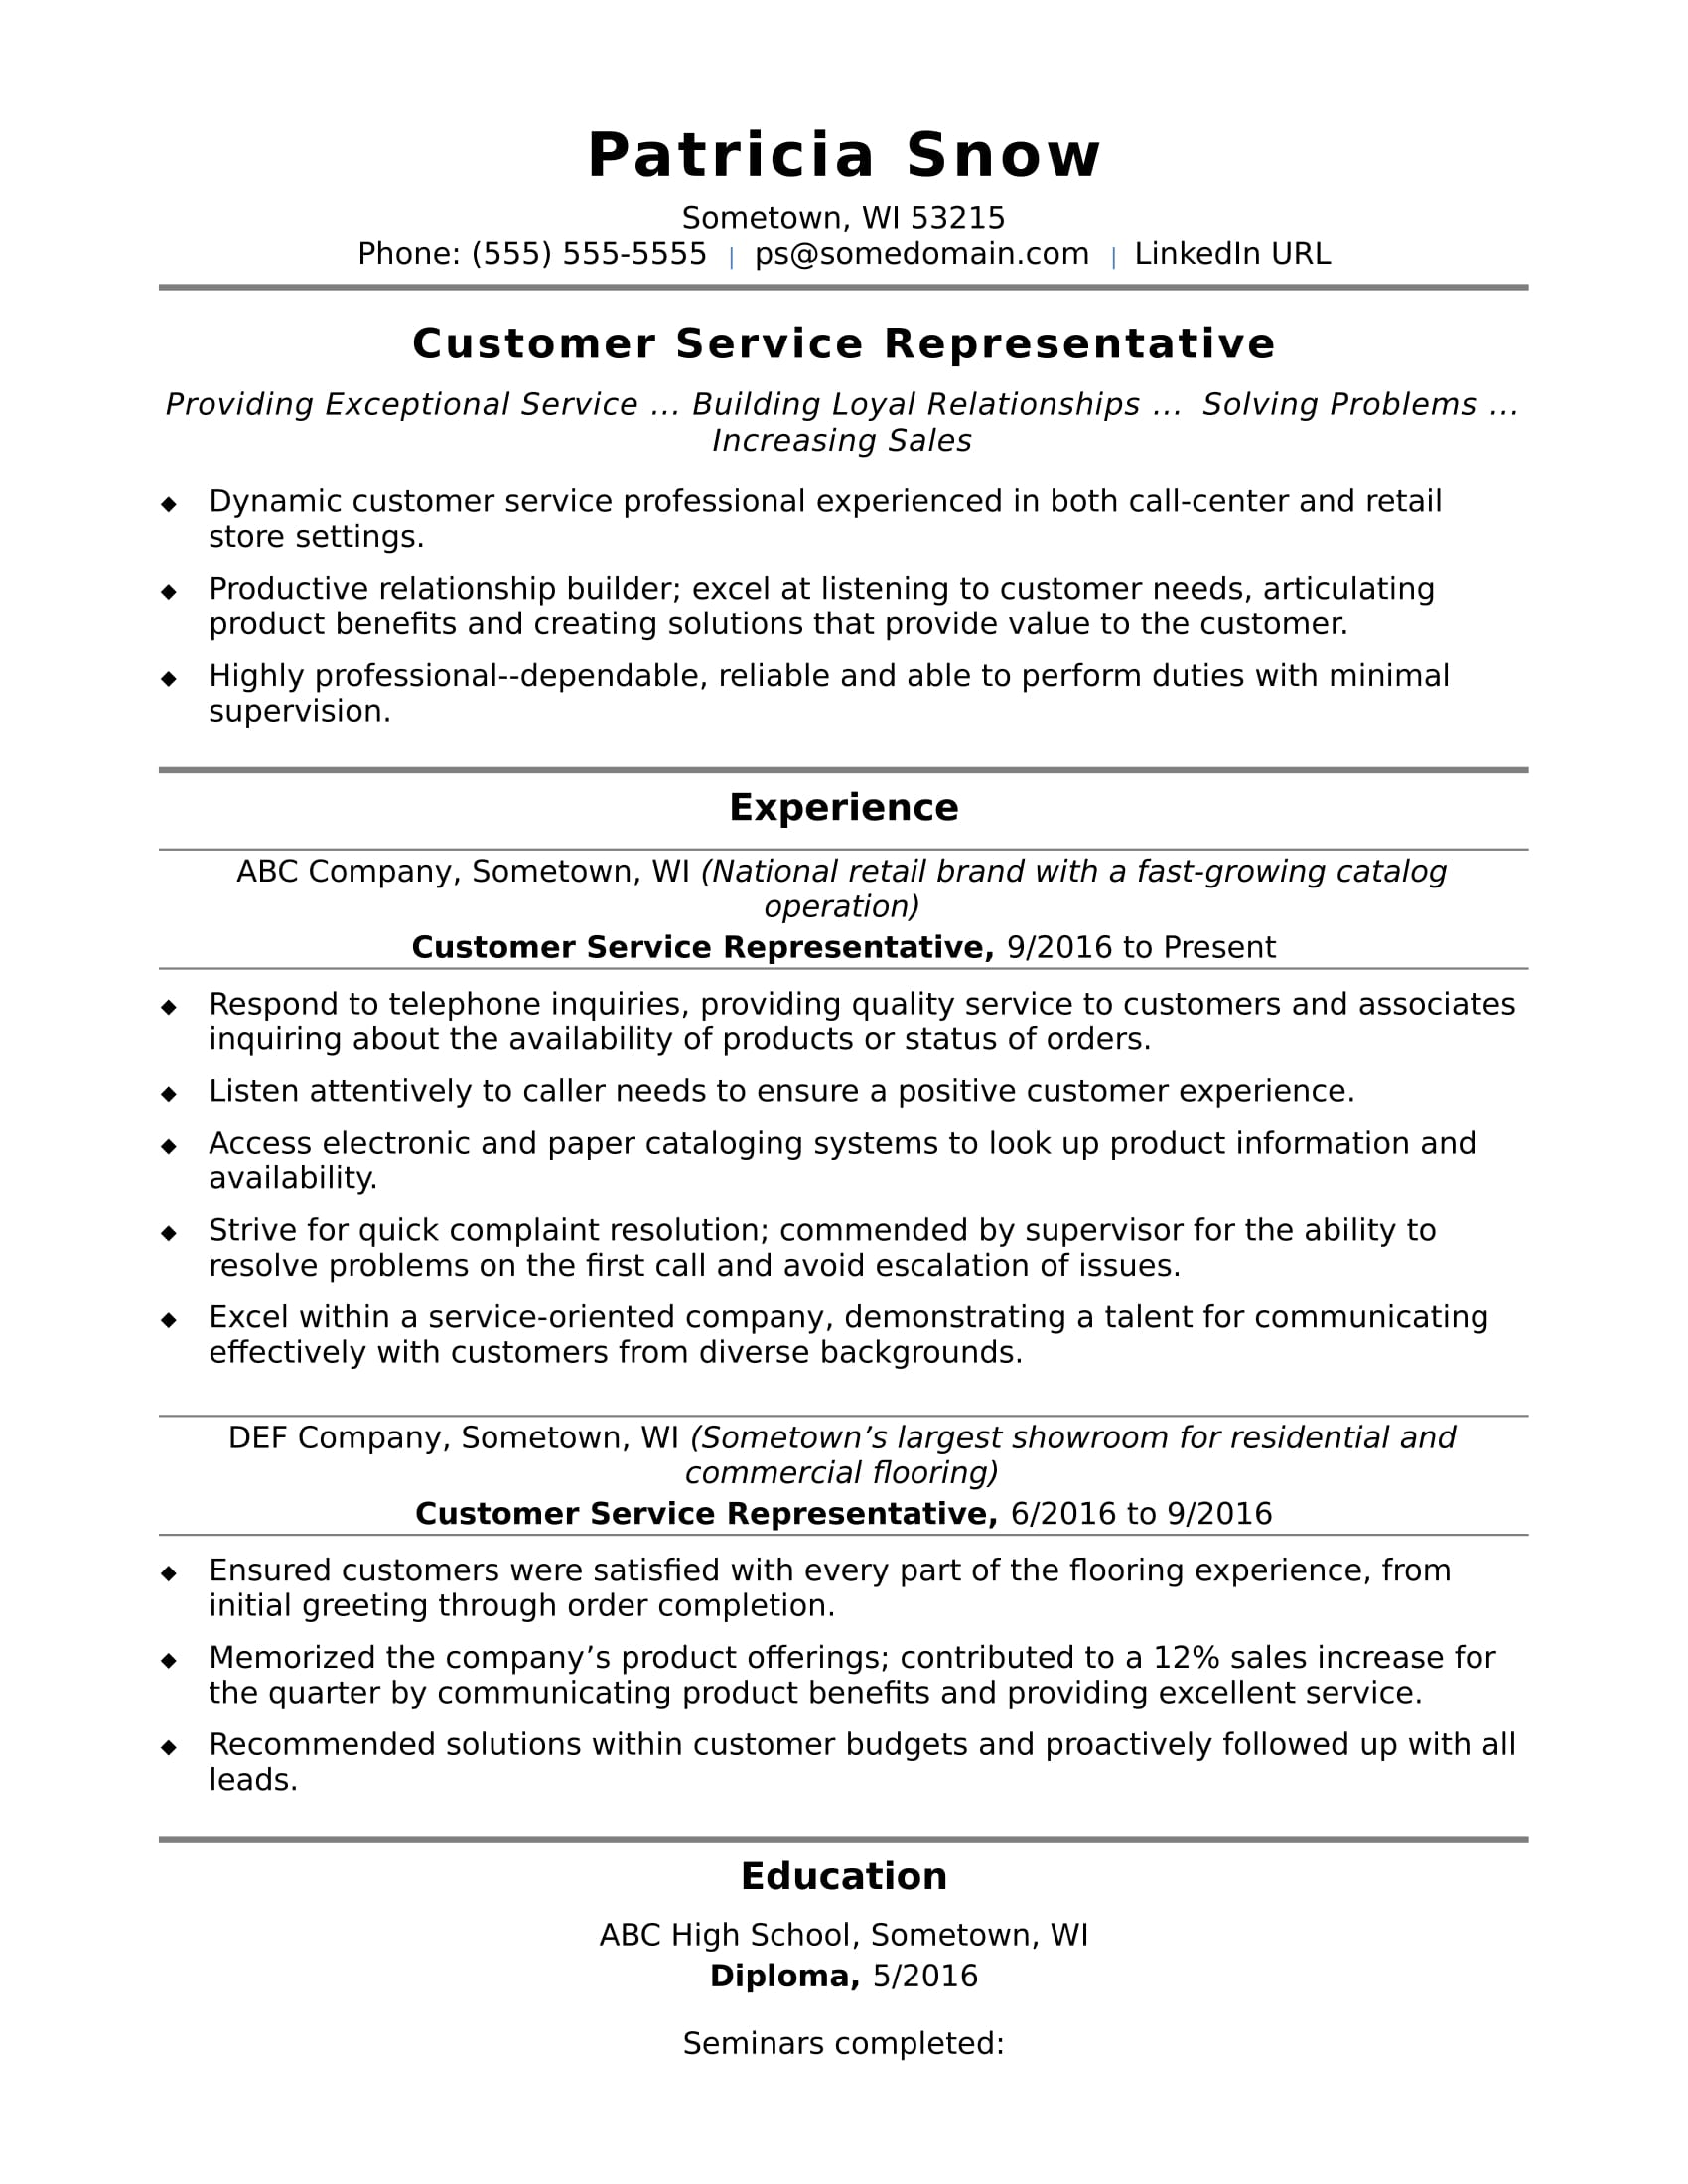 Customer Service Representative Resume Sample Monster Com